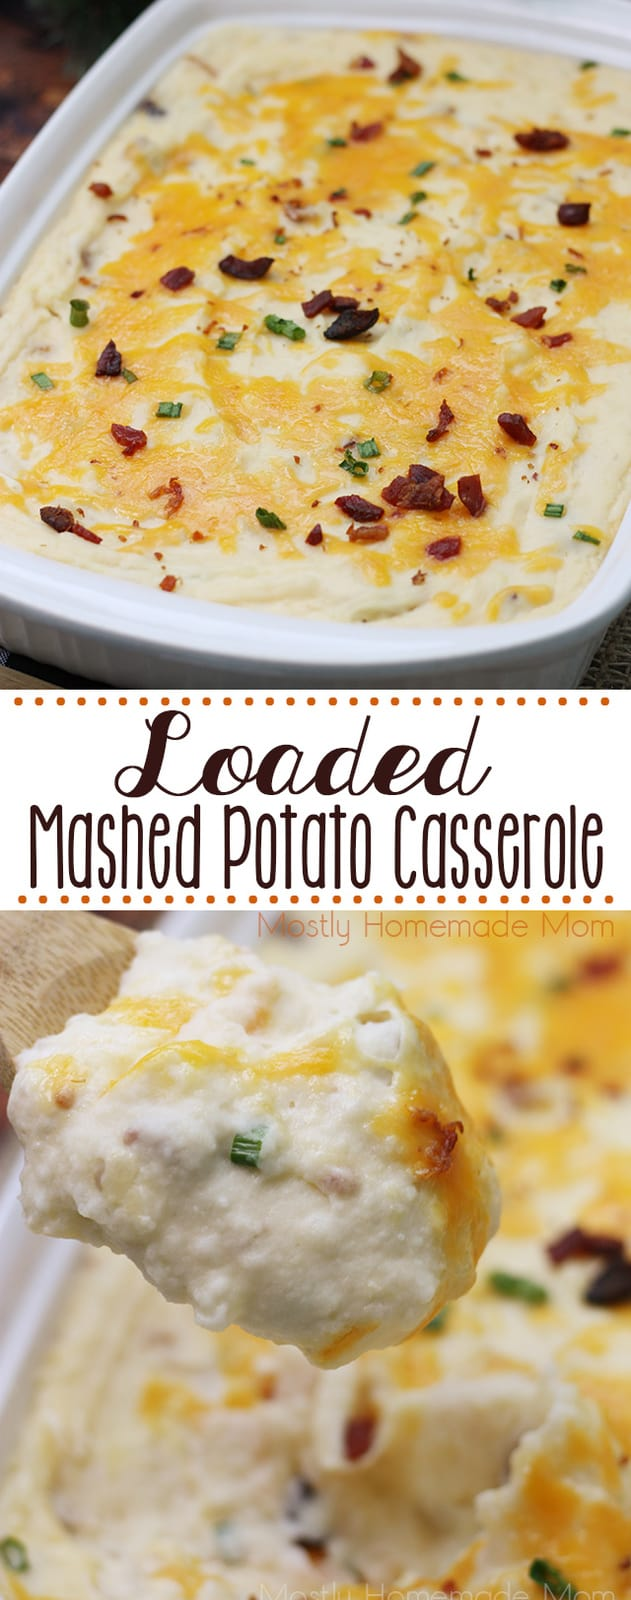 Loaded Mashed Potato Casserole has butter, cream cheese, bacon, and green onion mixed in and then baked with more cheese on top - you can't beat these loaded mashed potatoes! #mashedpotatoes #loadedmashedpotatoes #sidedish #recipe